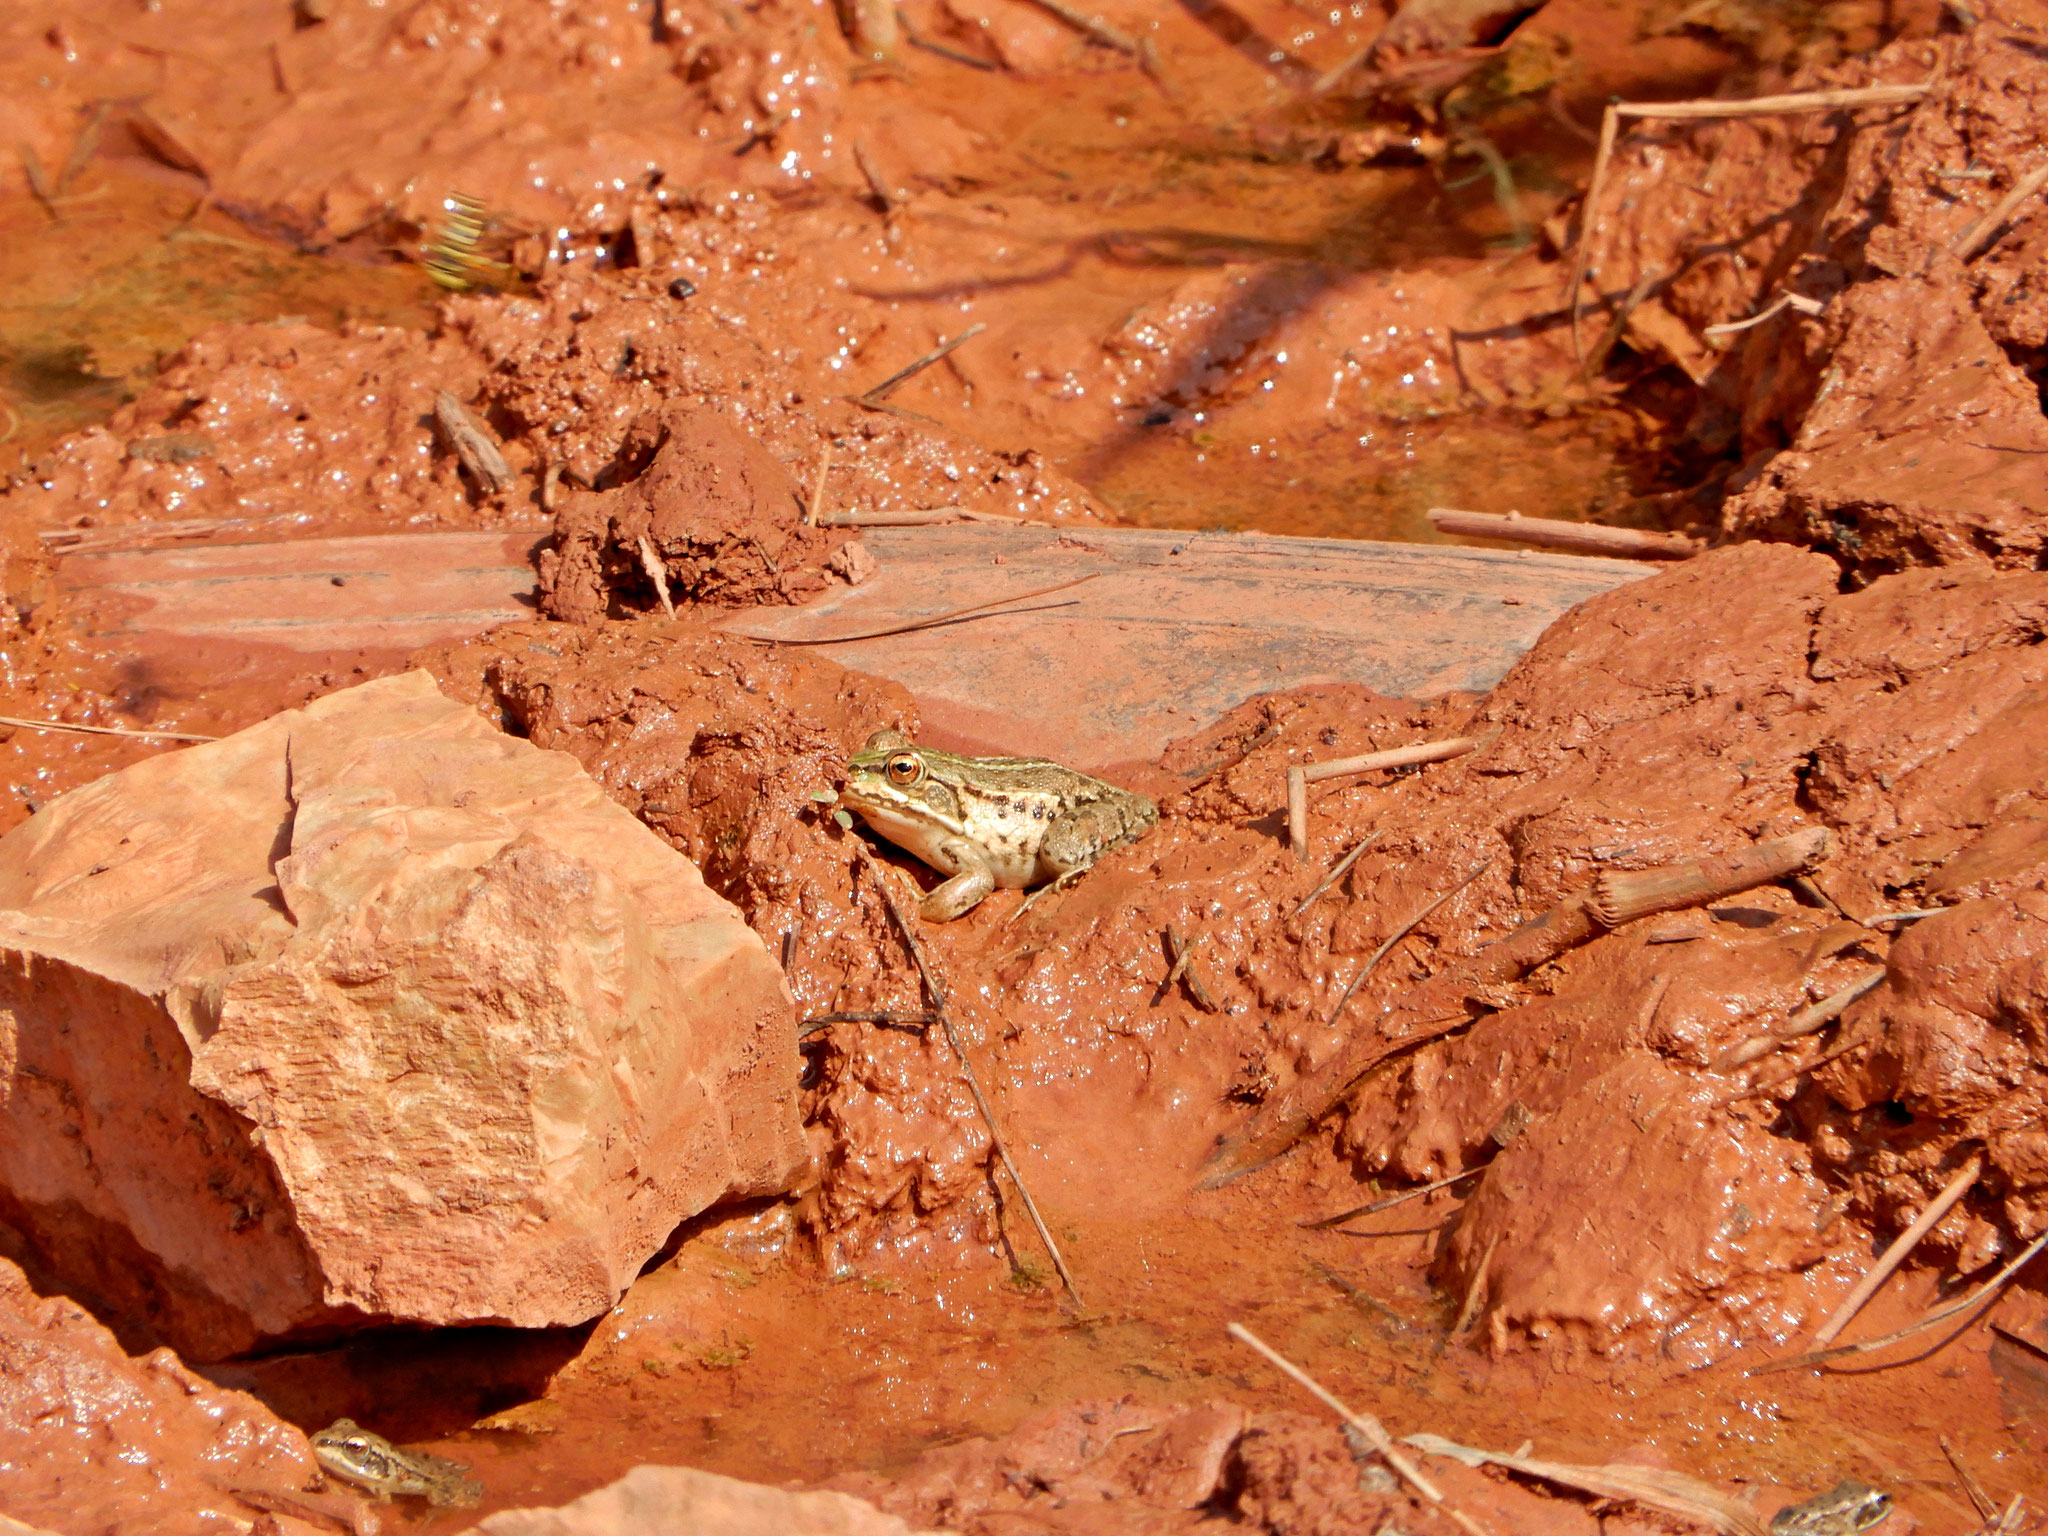 A green frog hopping through a bauxite pond